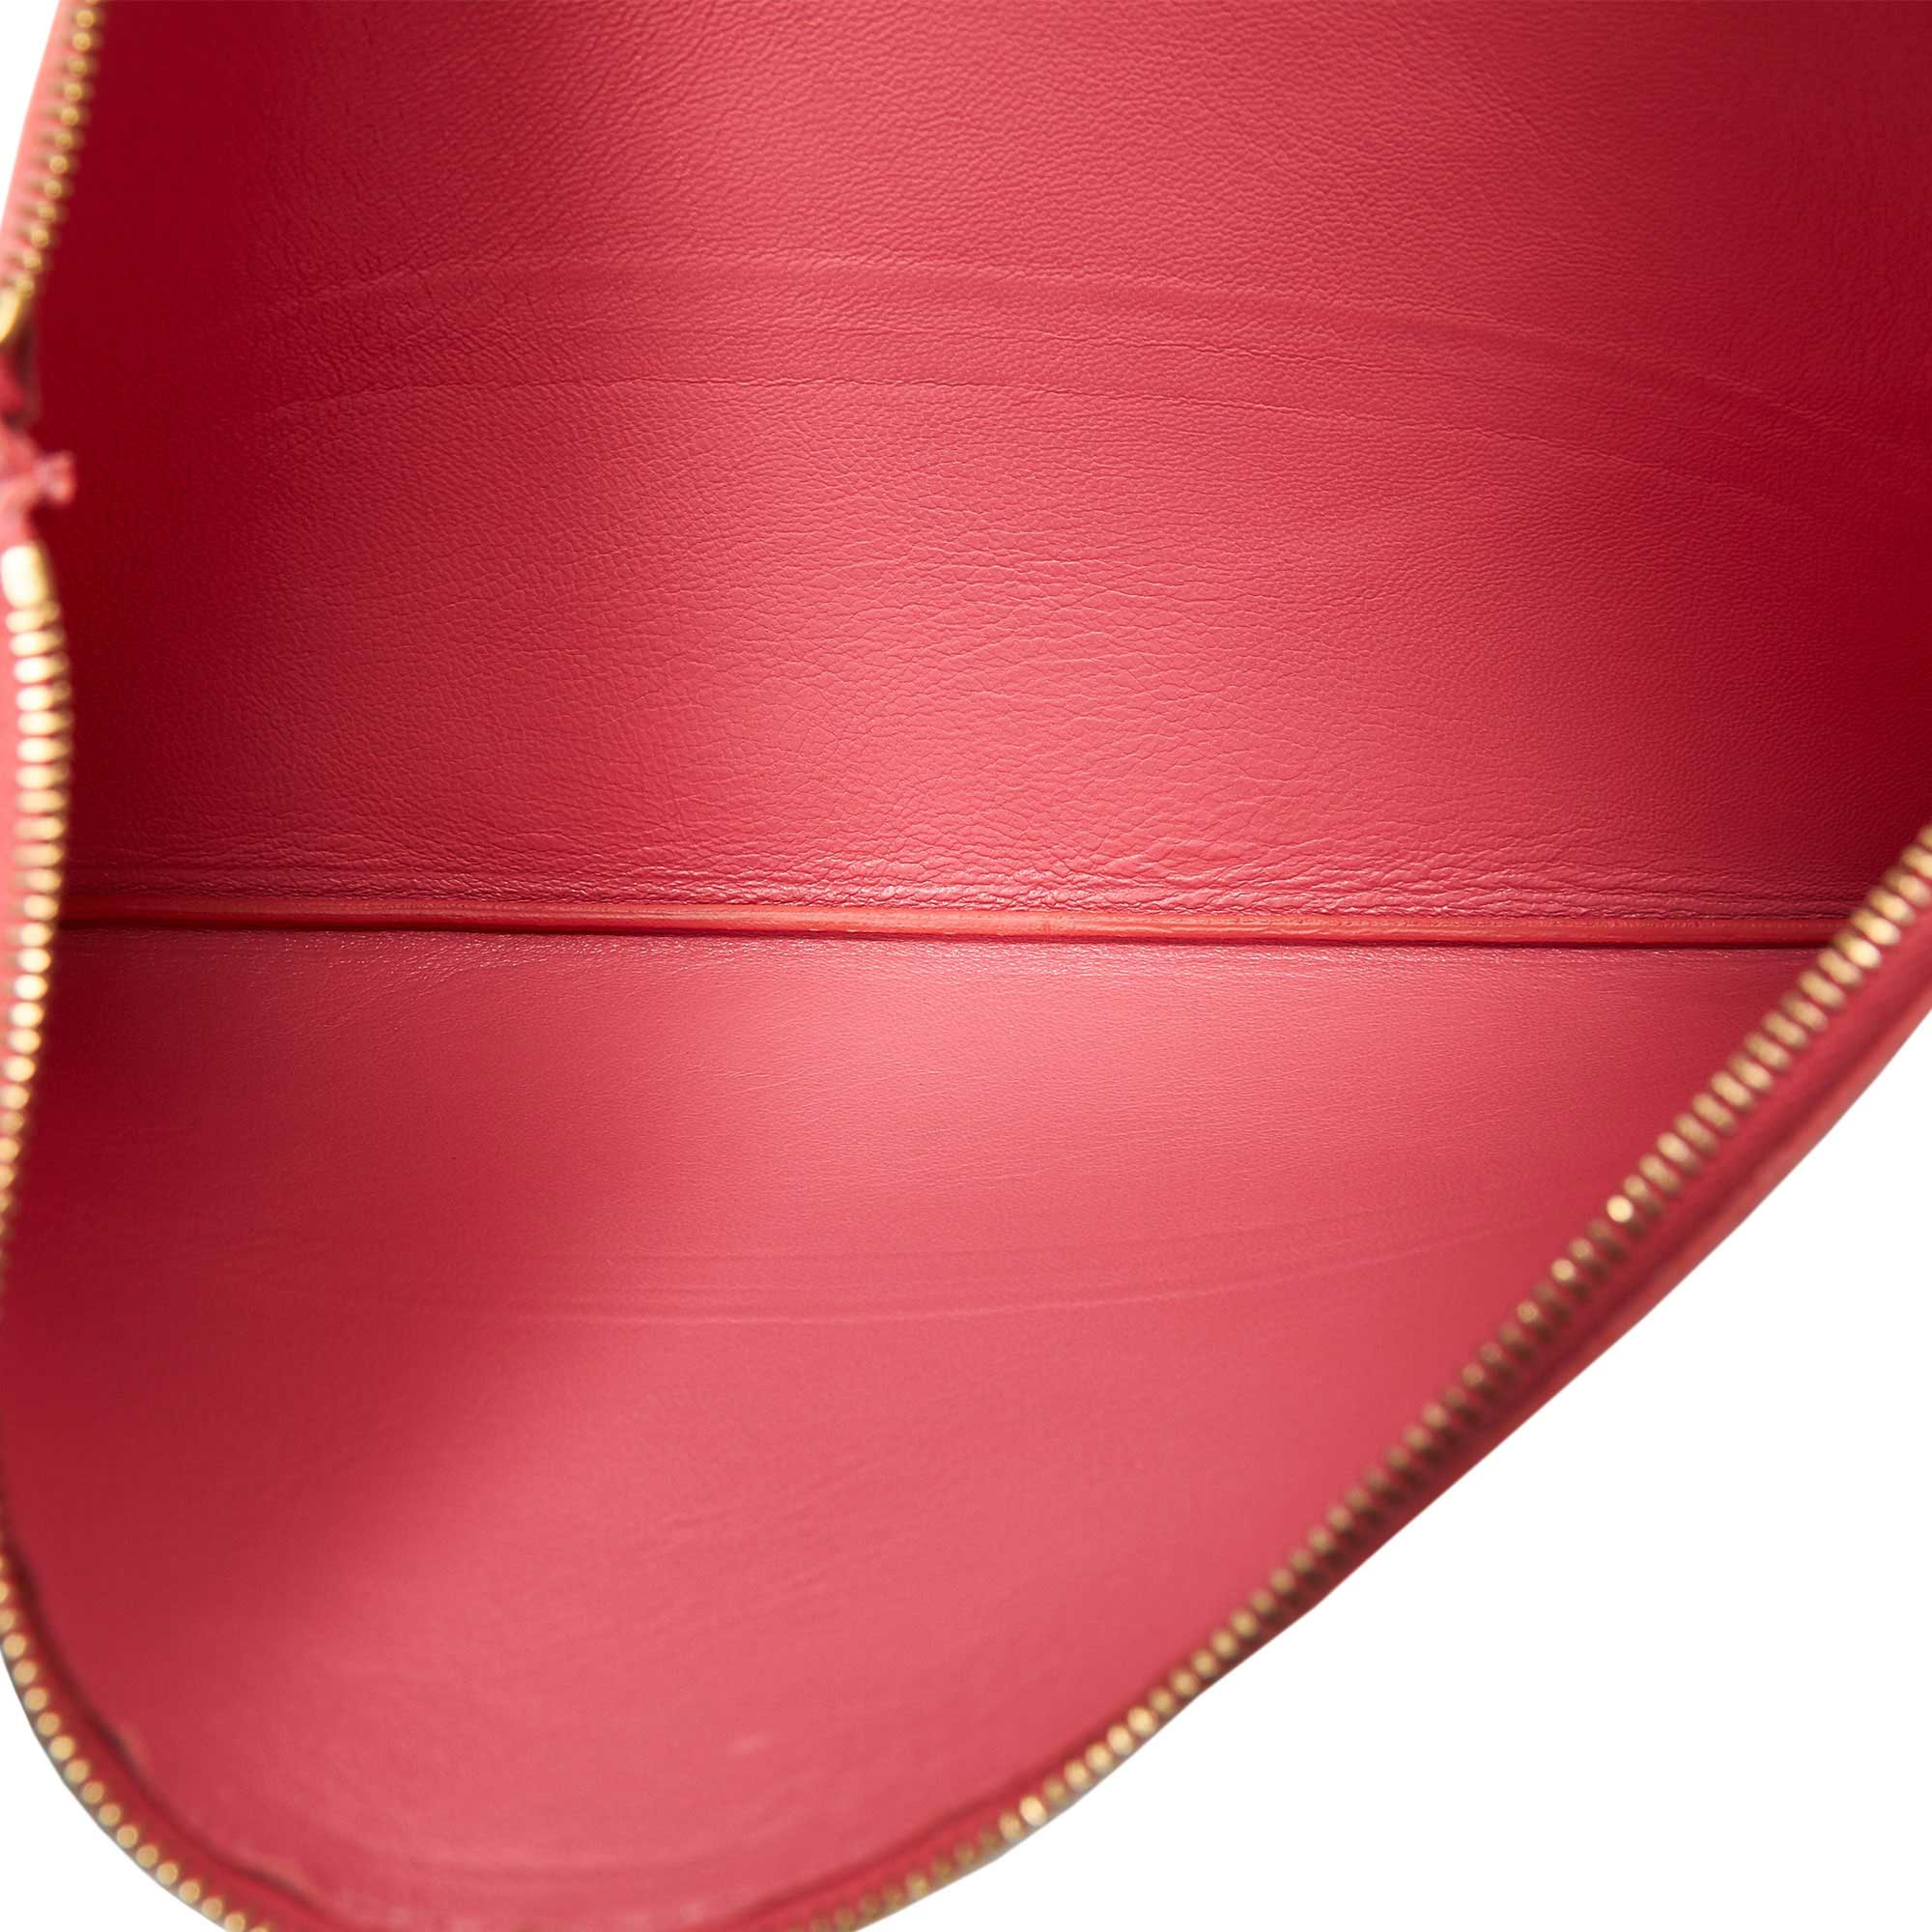 Celine Bicolor Leather Clutch Bag, Pink